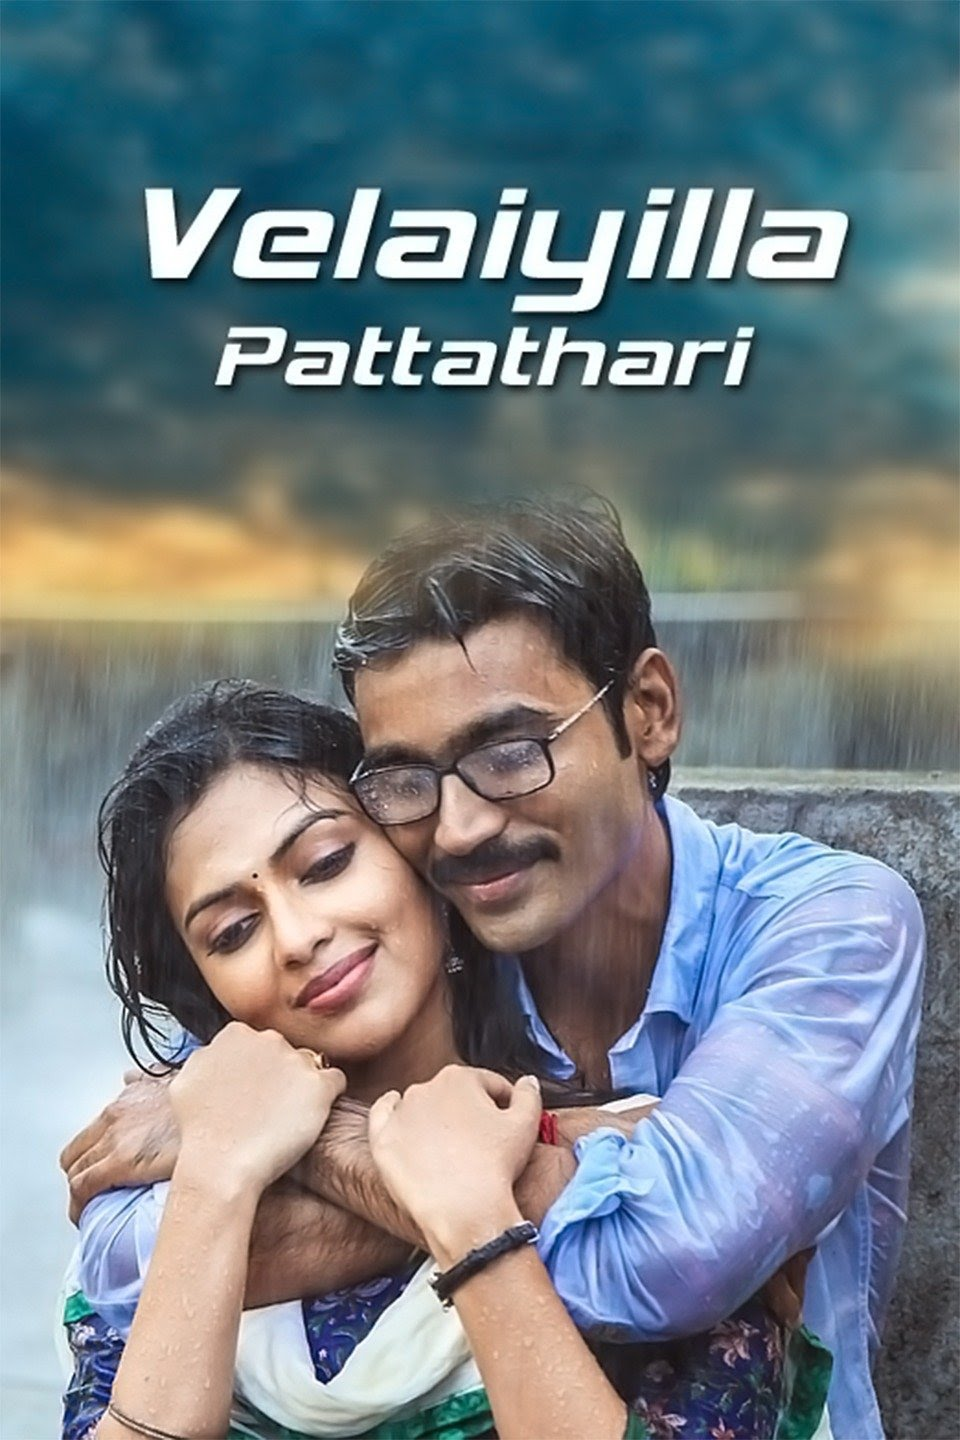 Velaiyilla Pattathari (VIP) 2014 Hindi Dual Audio 470MB UNCUT HDRip